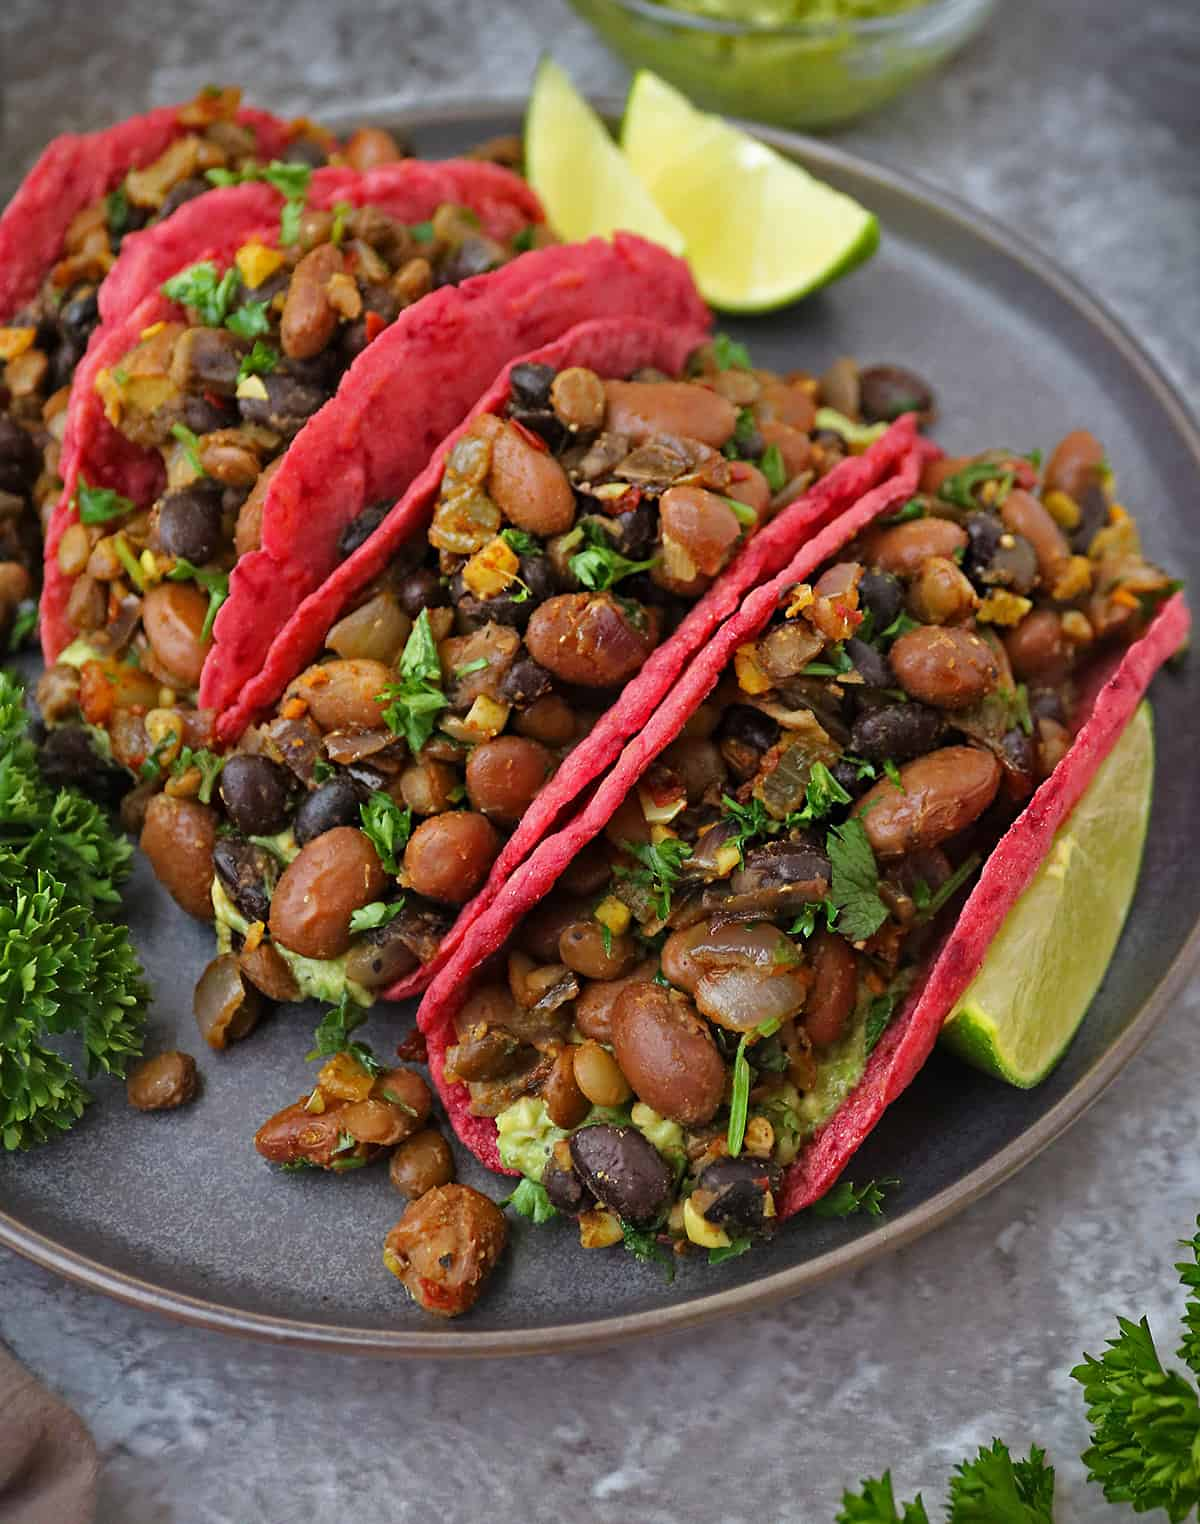 Tasty & Gluten-Free Easy Beet Tortillas With Bean Filling on  plate